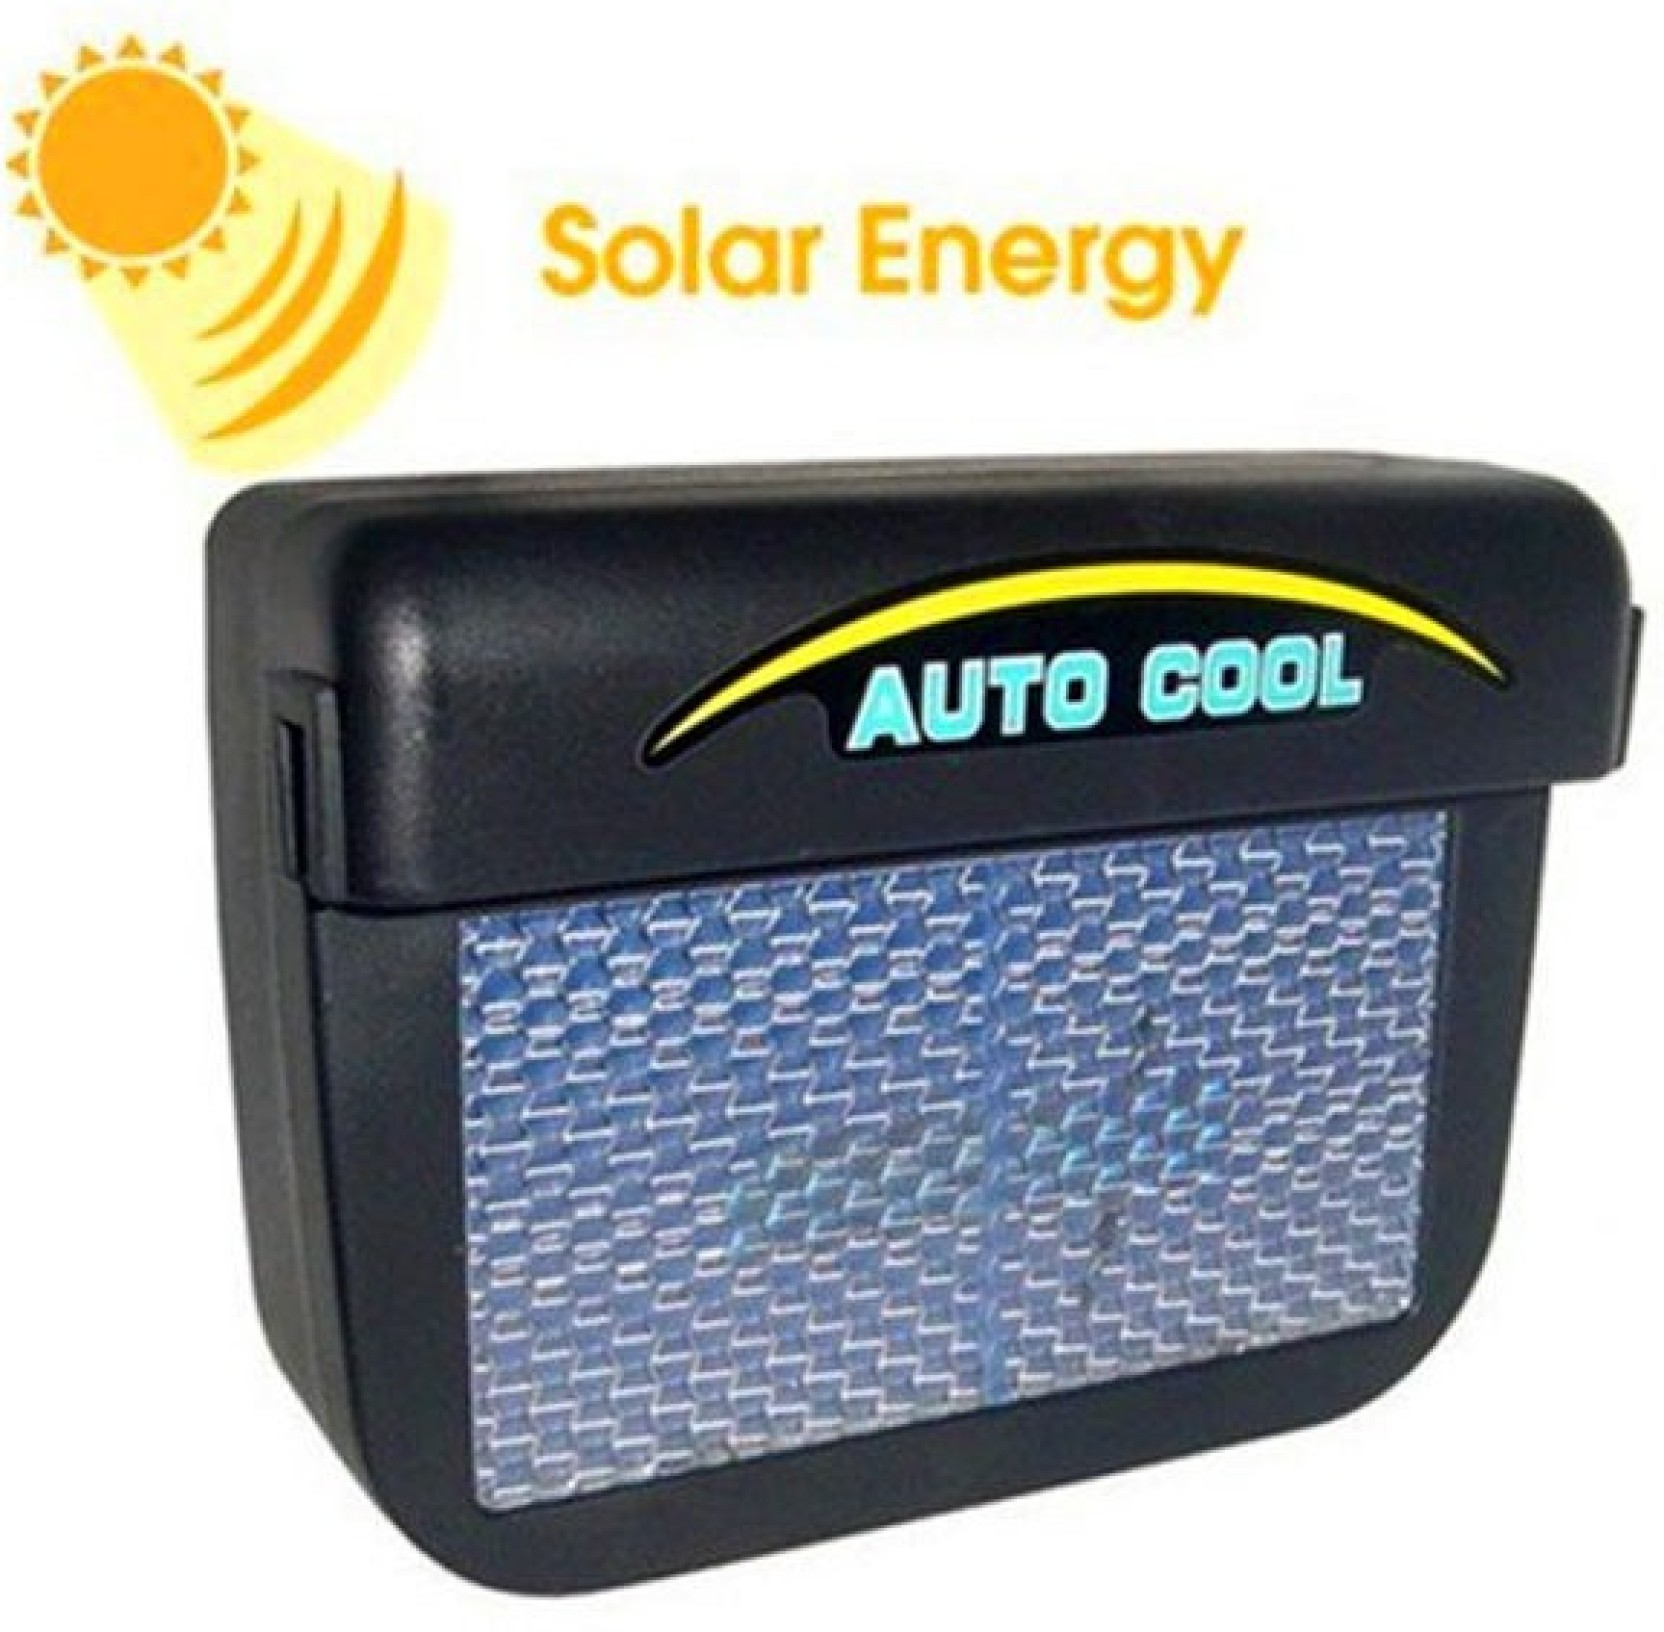 e deal solar auto cooler car interior fan price in india buy e deal solar auto cooler car. Black Bedroom Furniture Sets. Home Design Ideas